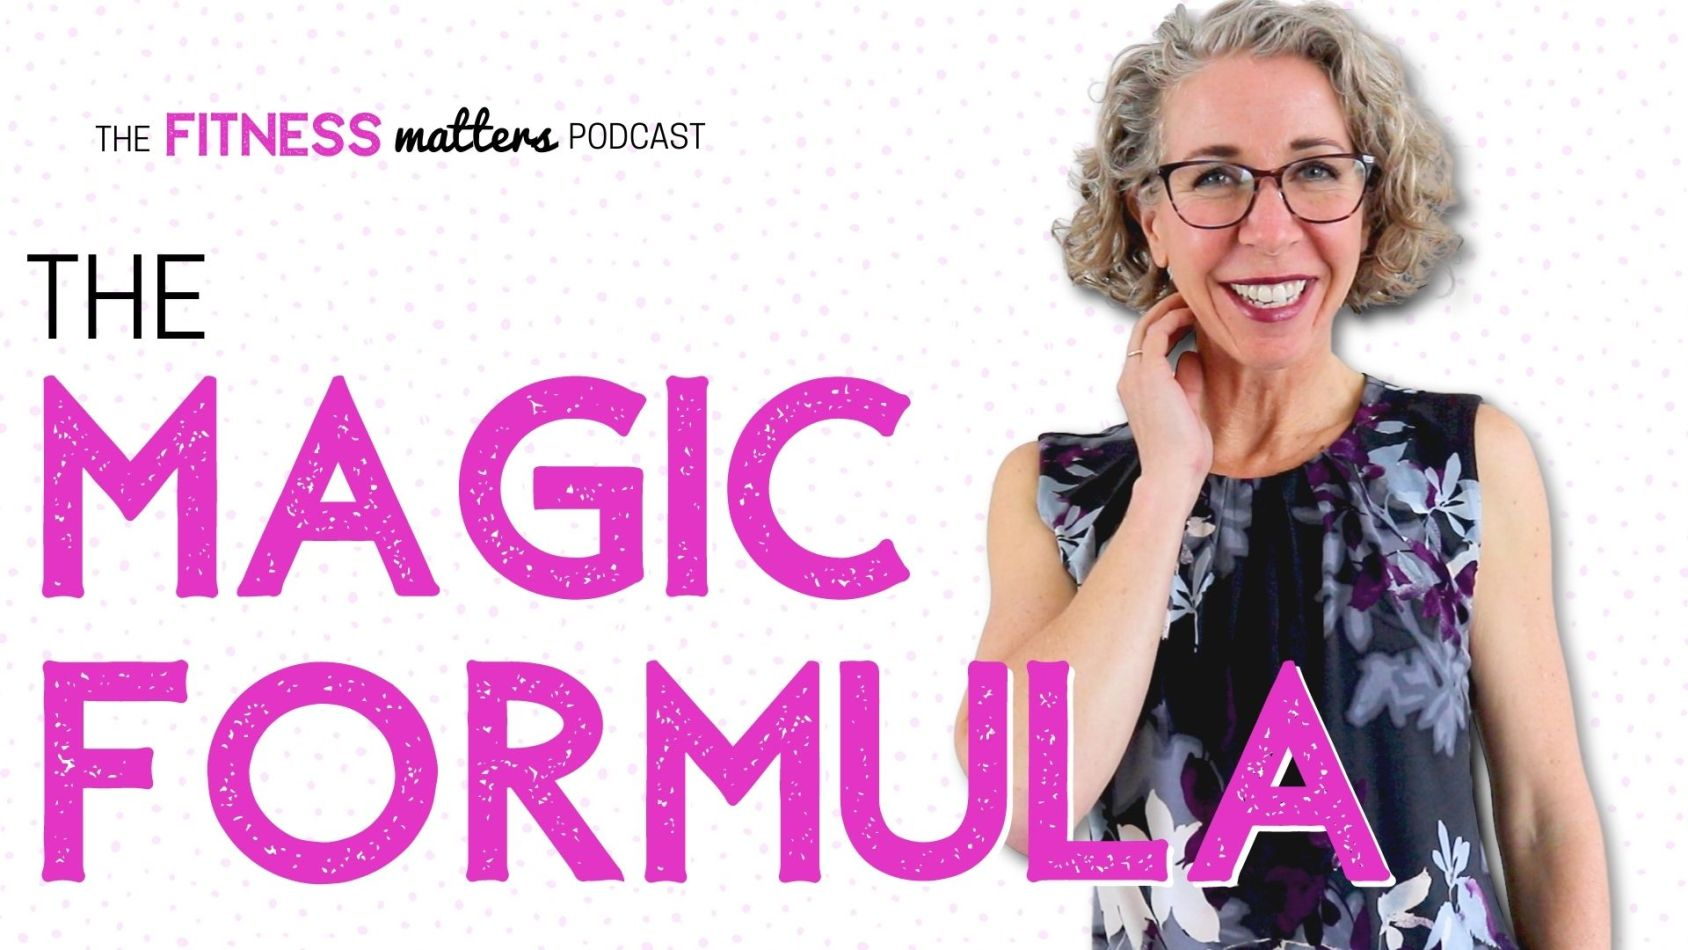 Ep. 077: The MAGIC FORMULA ???? The Fitness Matters Podcast with Pahla B